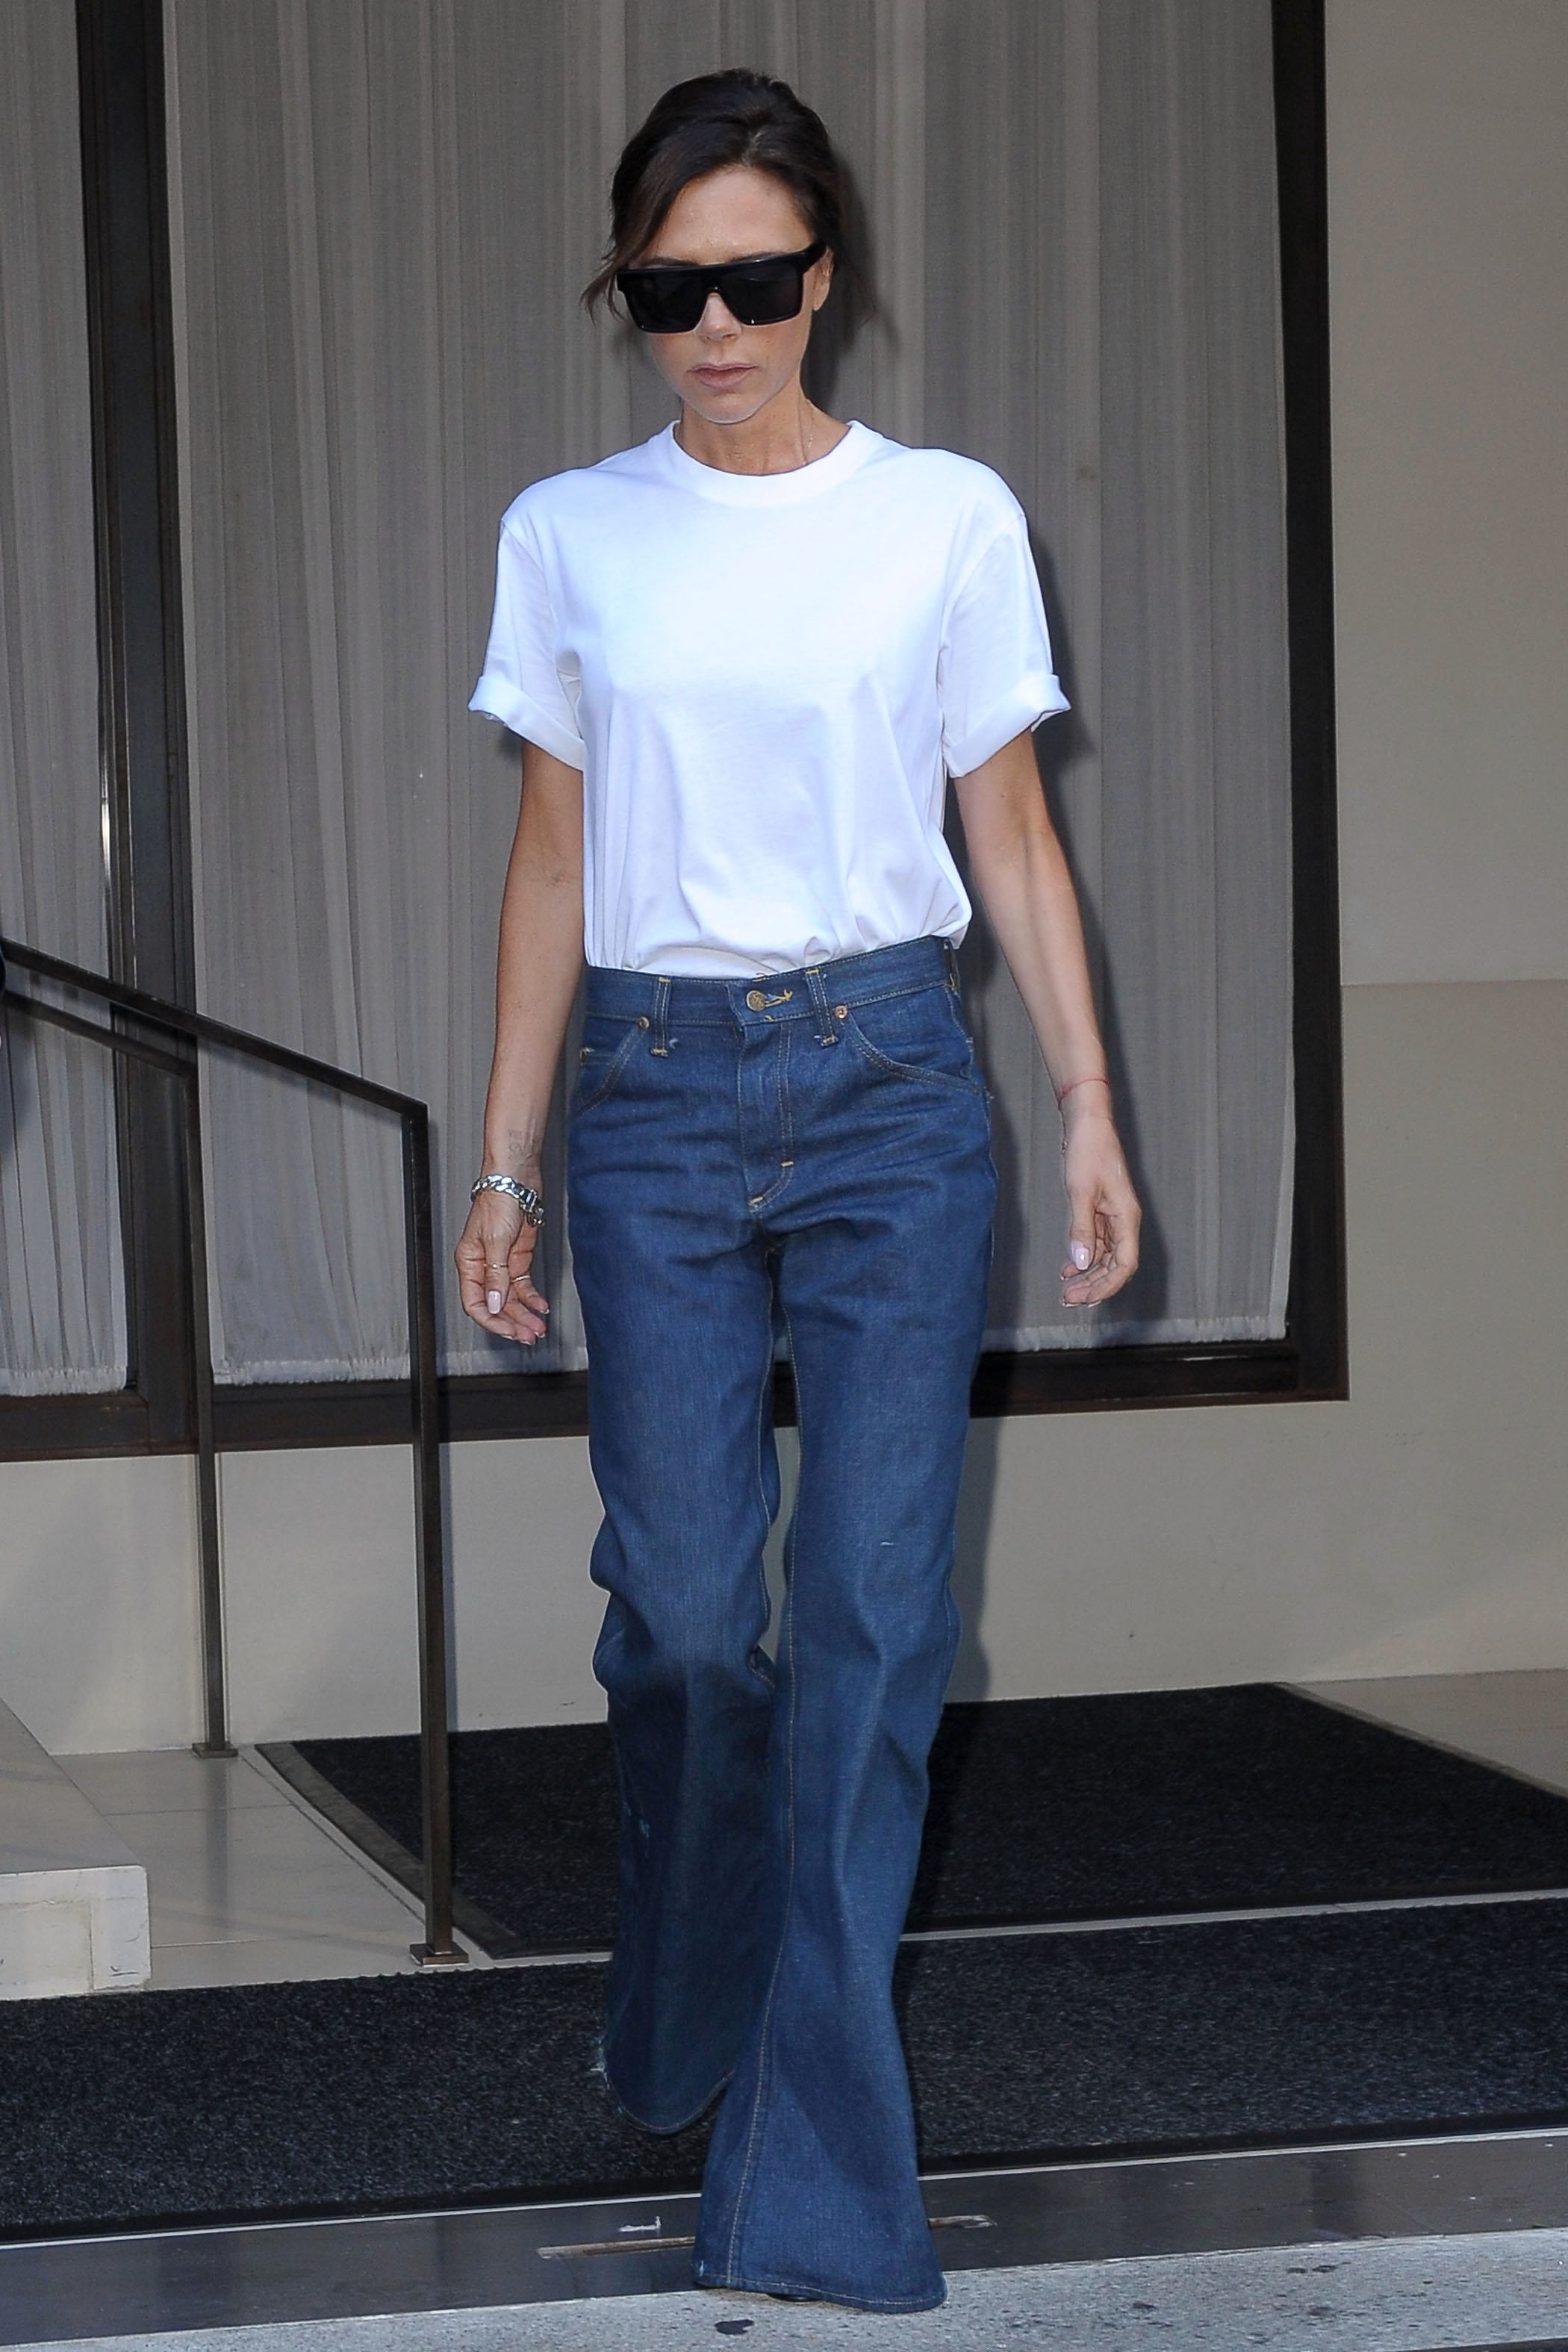 , New York, NY - 9/7/17-Victoria Beckham Sporting a Retro Denim Look -PICTURED: Victoria Beckham -, Image: 348596160, License: Rights-managed, Restrictions: , Model Release: no, Credit line: Profimedia, INSTAR Images